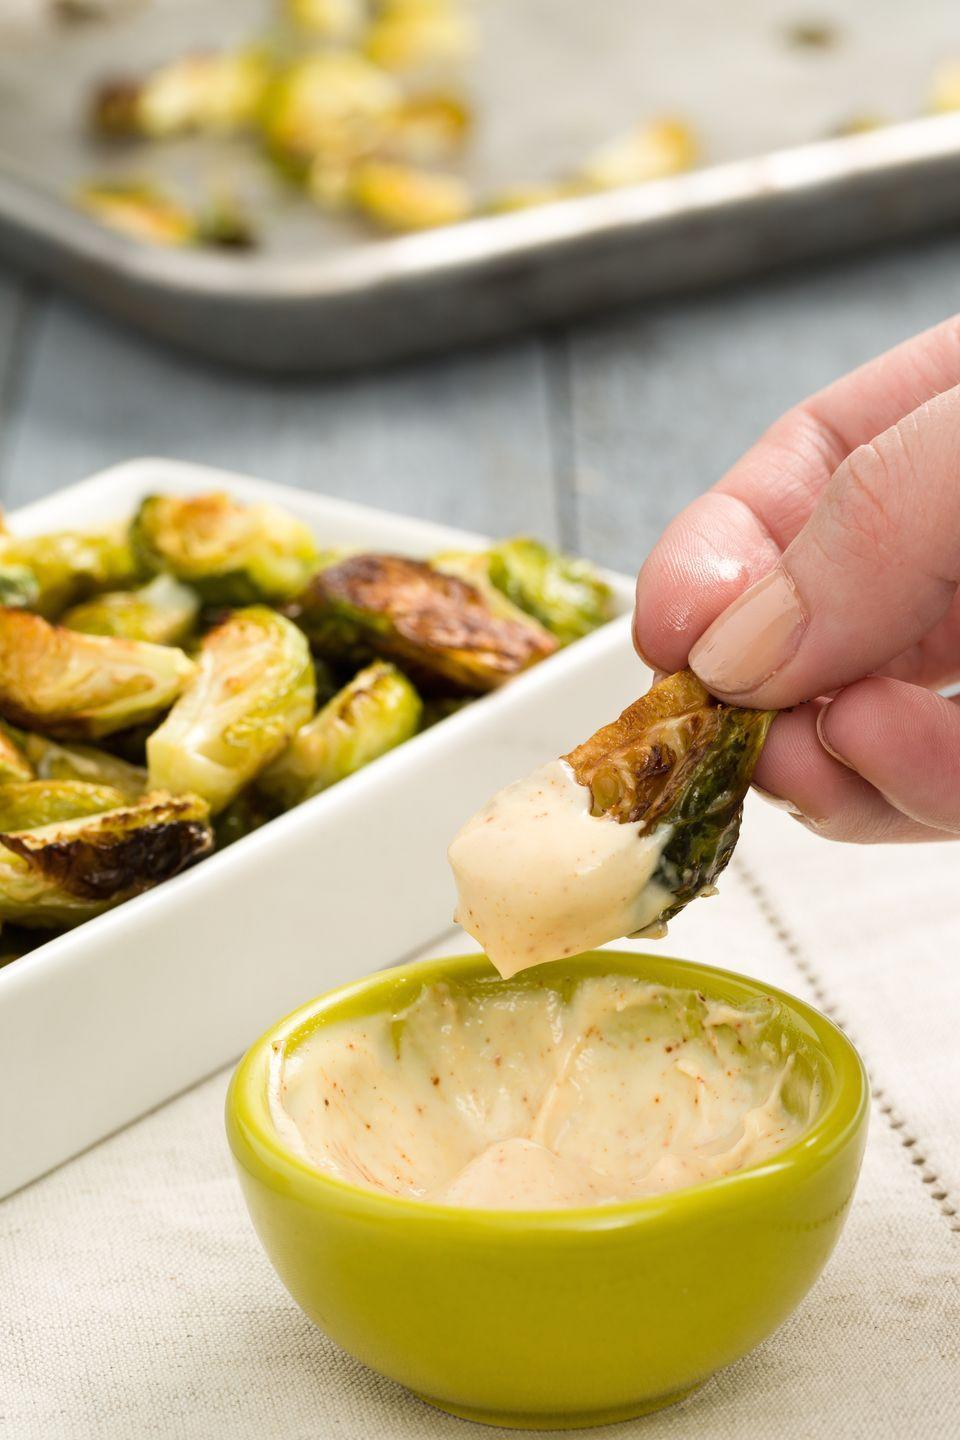 """<p>If you're making brussels sprouts as a dinner side dish, just make extra for a dip-able app. Two-in-one FTW!</p><p>Get the recipe from <a href=""""https://www.redbookmag.com/holiday-recipes/thanksgiving/recipes/a44806/crispy-brussels-sprouts-with-spicy-aioli-recipe/"""" rel=""""nofollow noopener"""" target=""""_blank"""" data-ylk=""""slk:Delish"""" class=""""link rapid-noclick-resp"""">Delish</a>.</p>"""